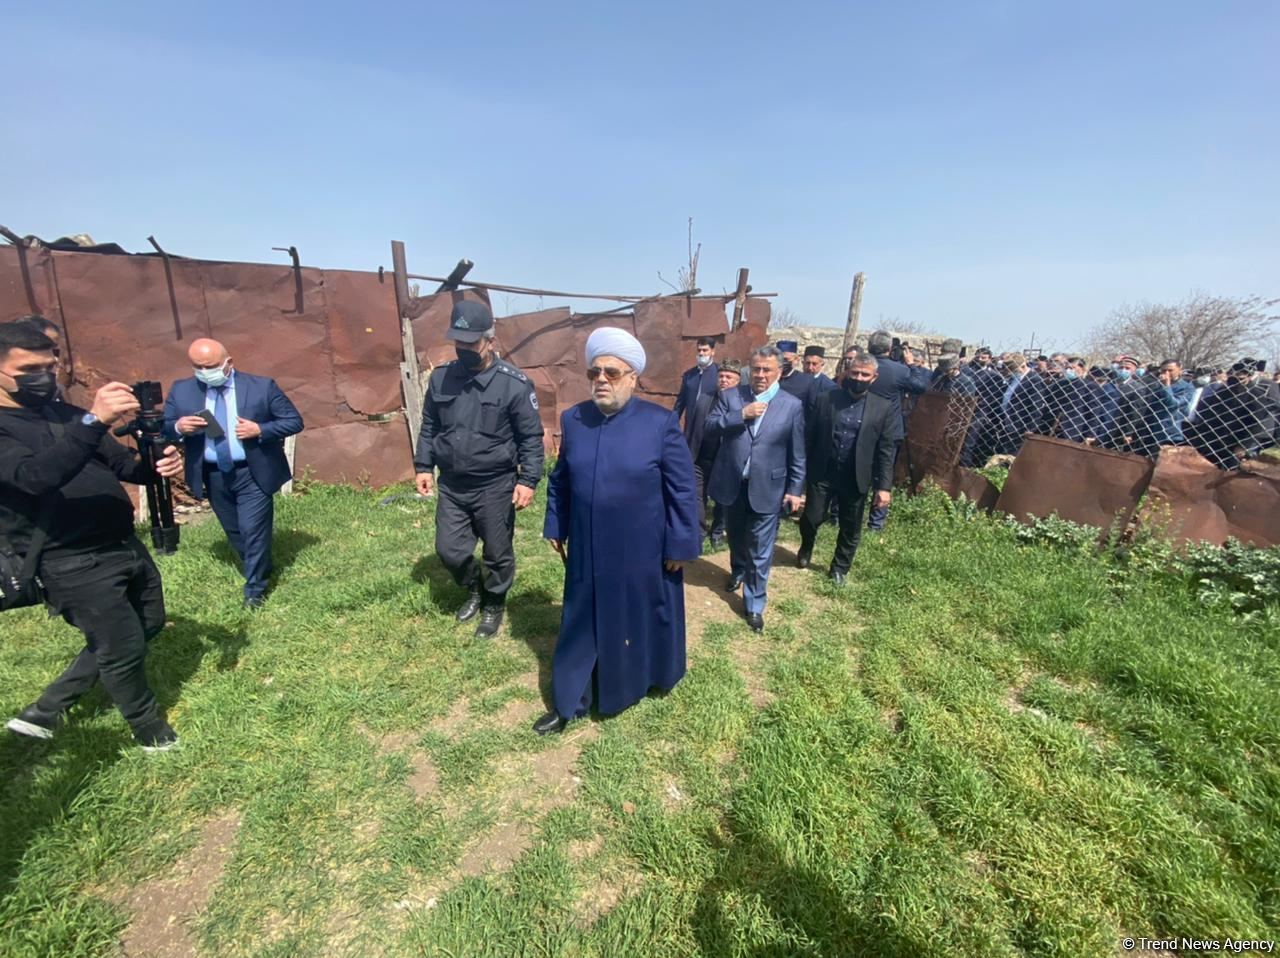 Religious Figures Of Azerbaijan View Ruined Monuments In Liberated Aghdam